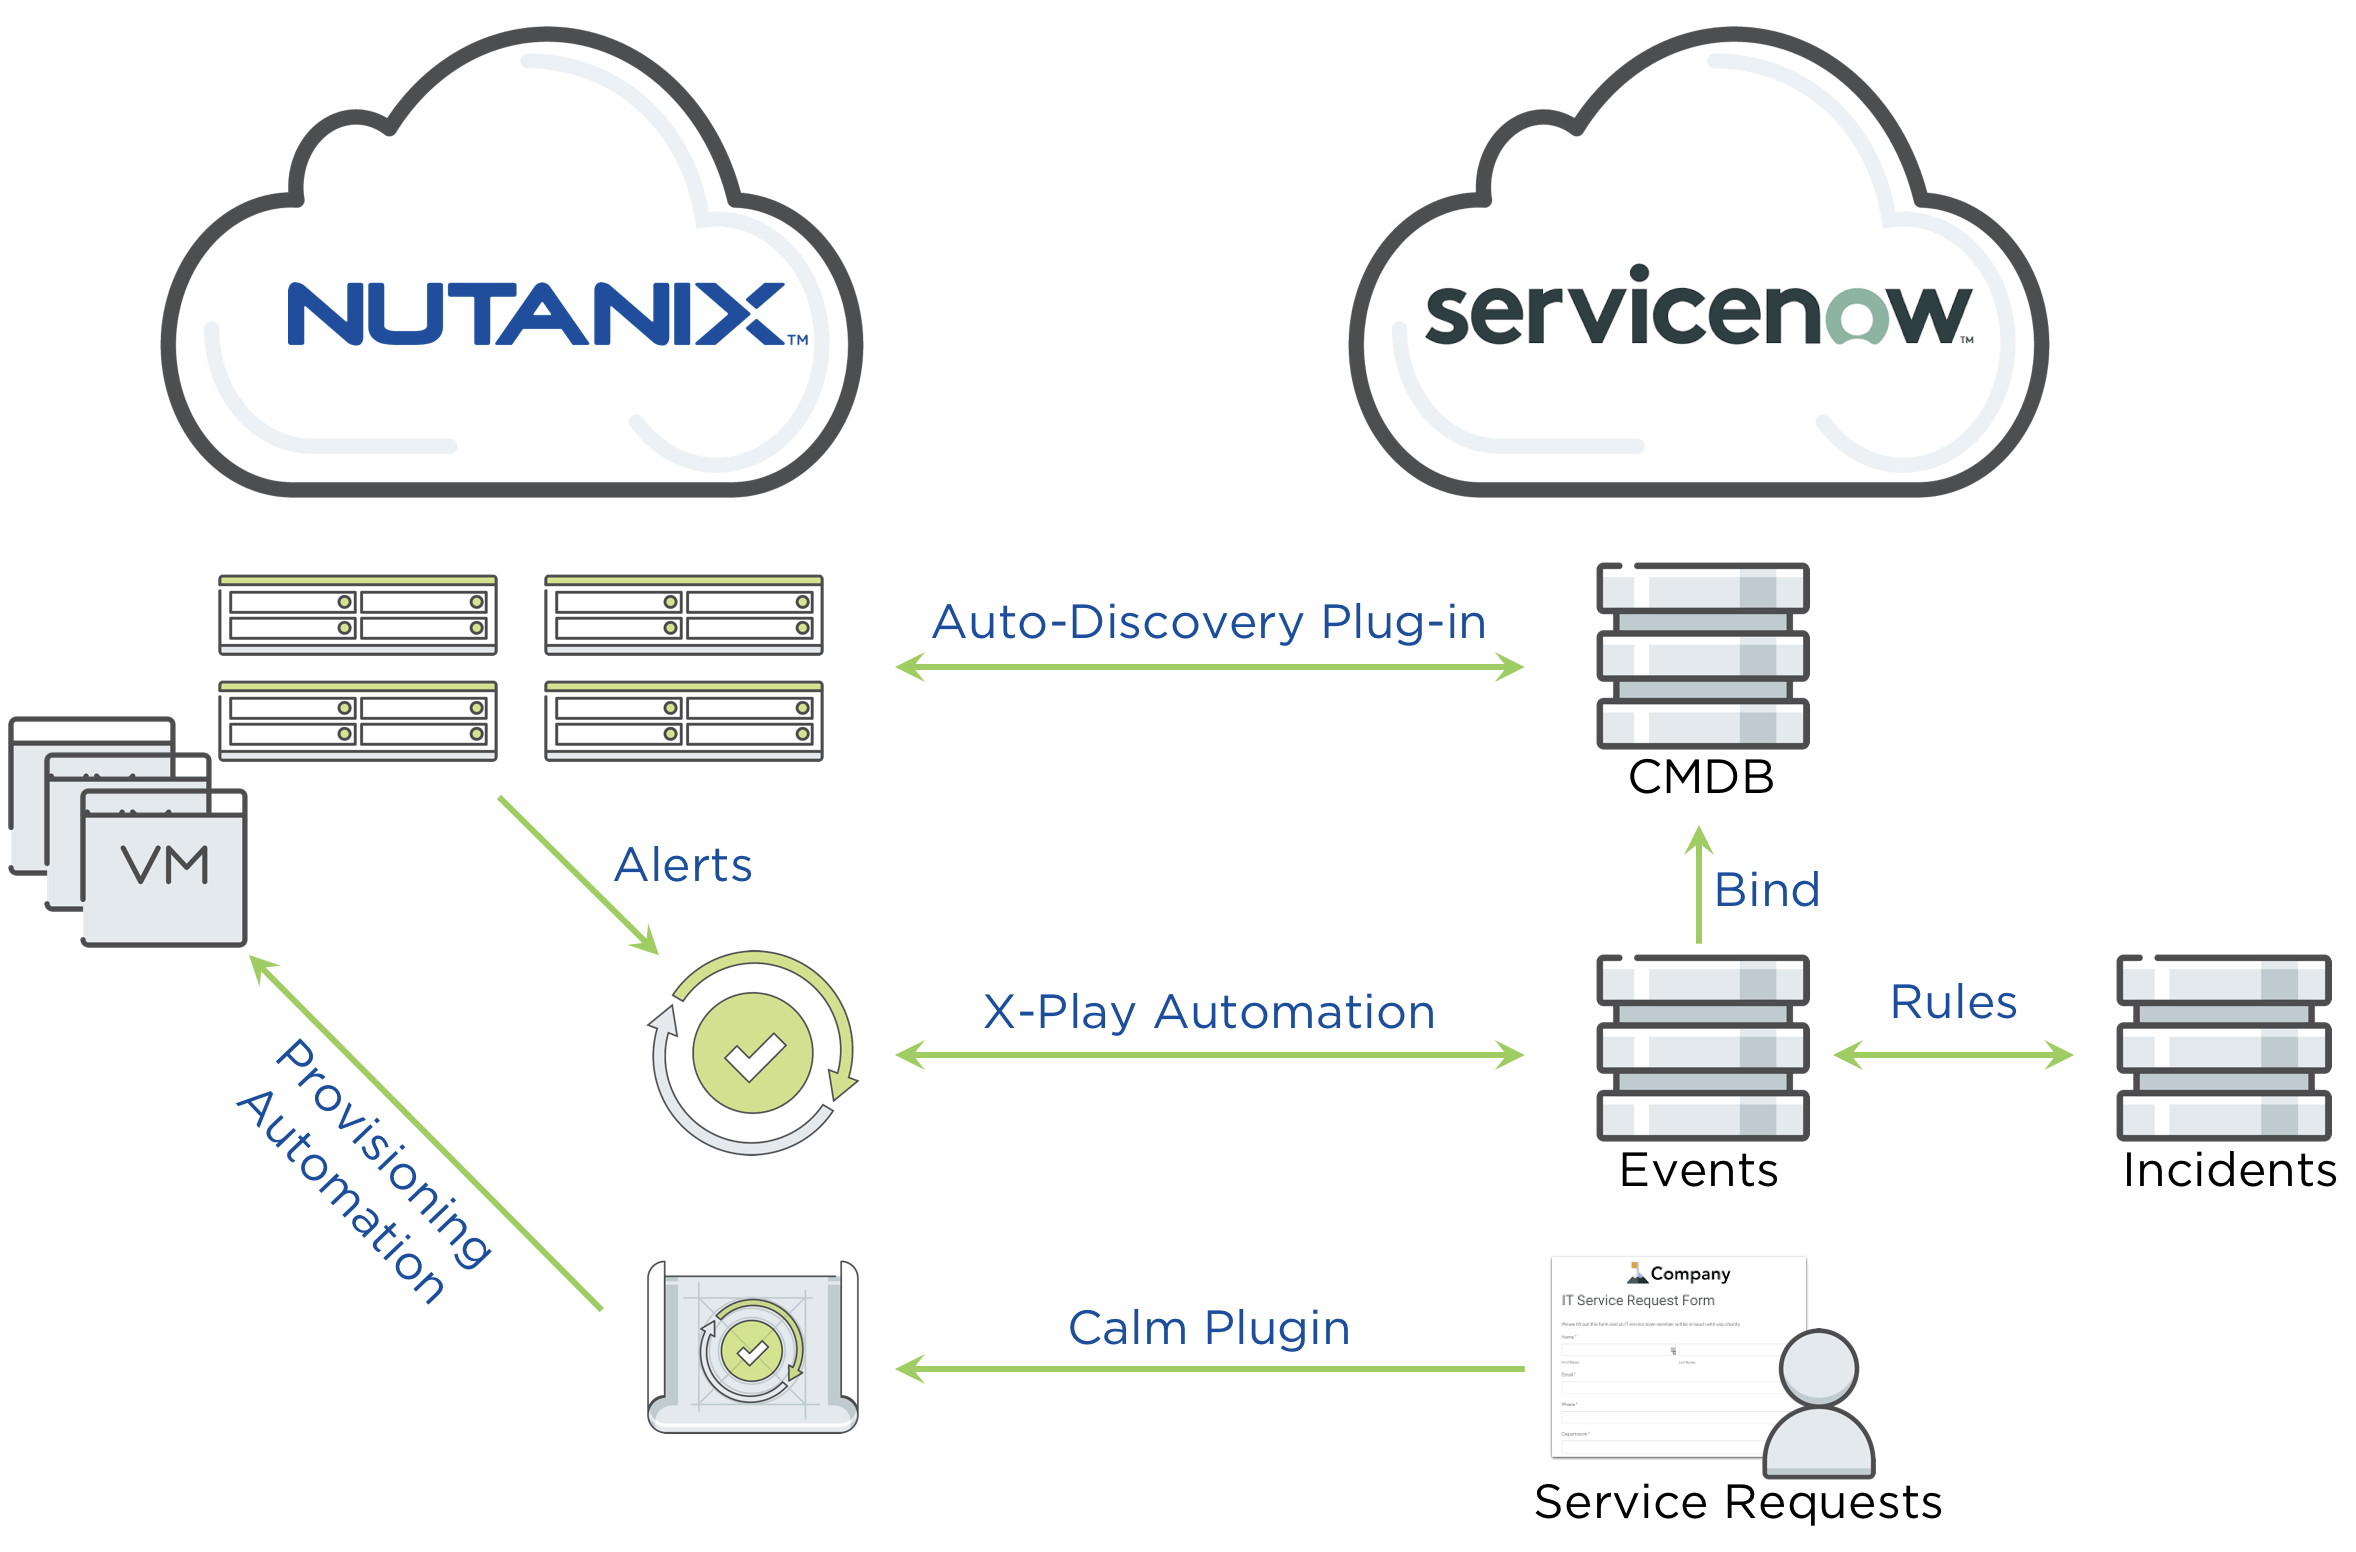 ServiceNOW and Nutanix integration flow